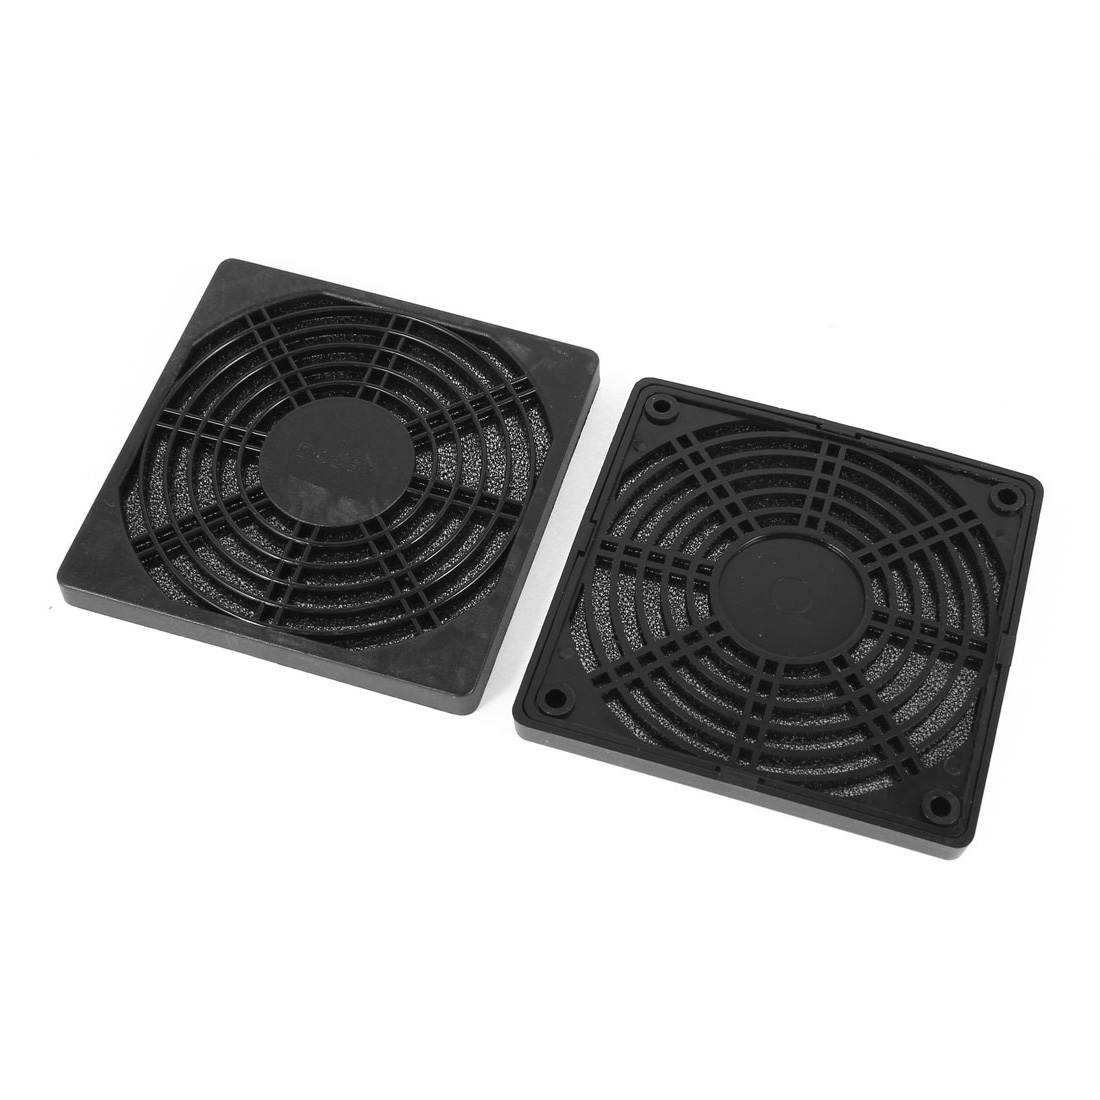 2 Pcs Dustproof Mesh Dust Filter Cover Grill for 120mm 12cm PC Computer Case Fan